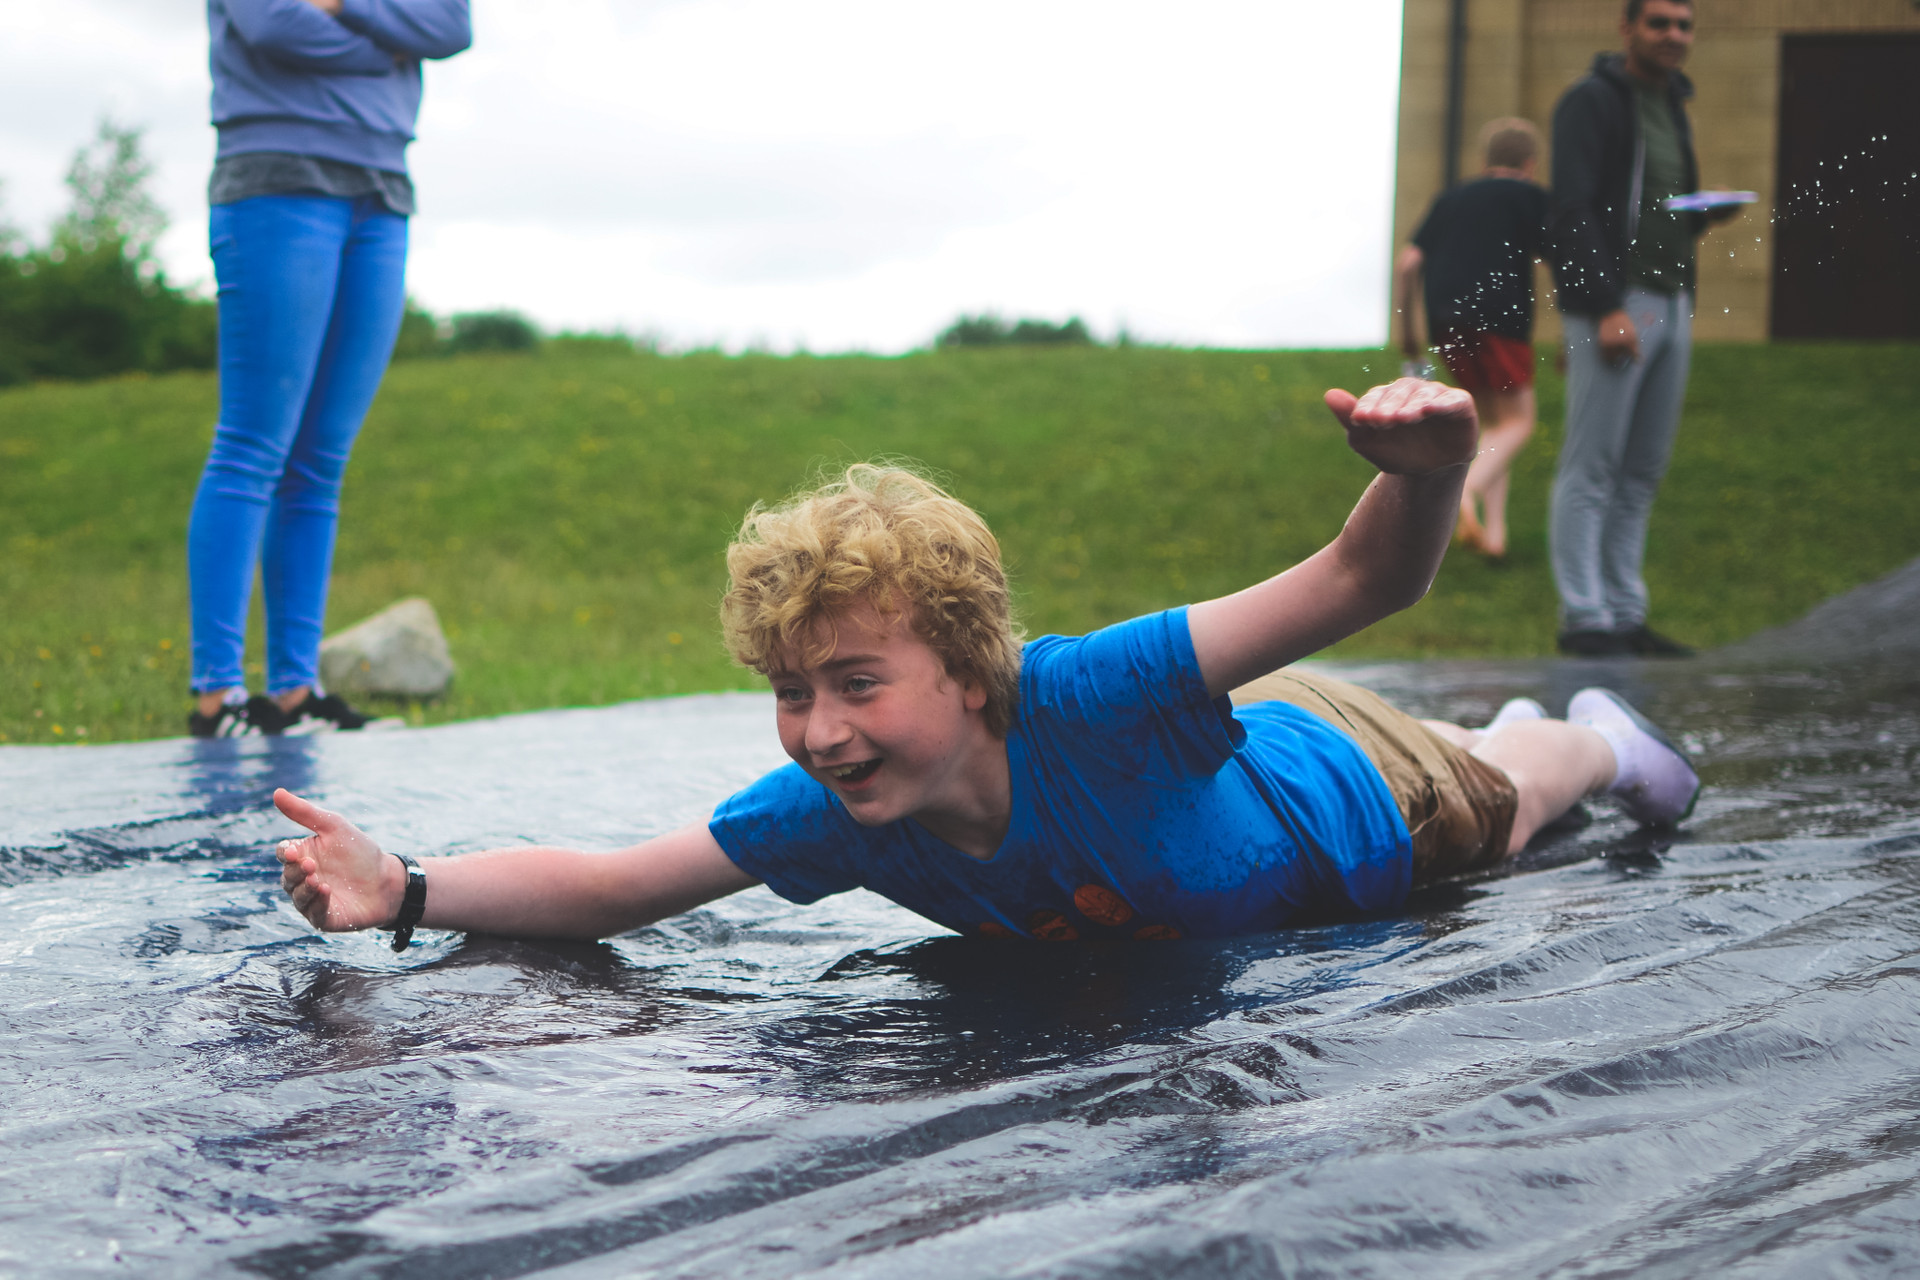 A camper enjoying the water games, sliding down a hill.